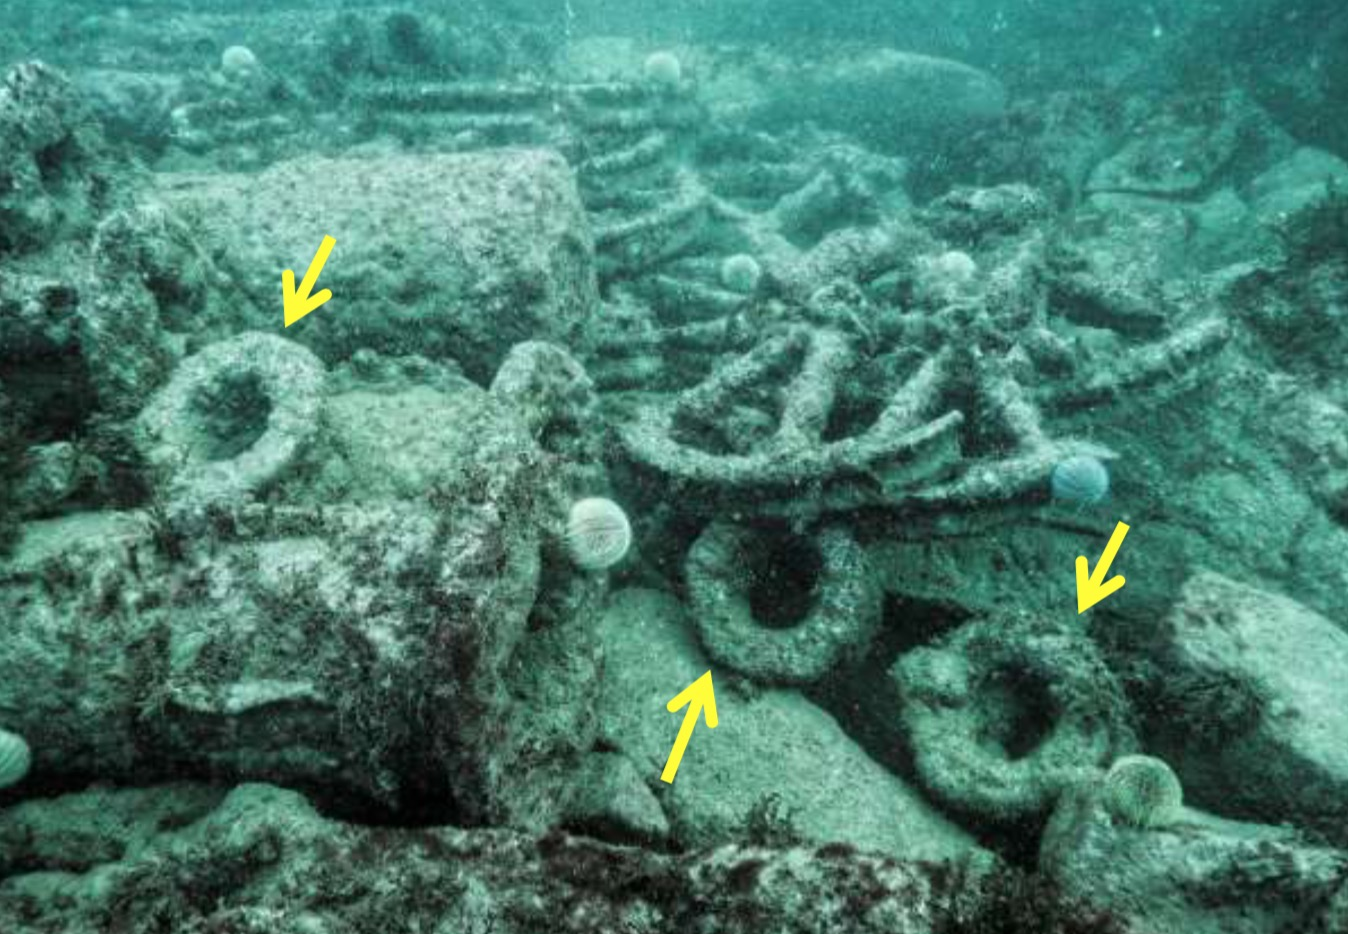 Photograph of broken wheels and circular iron collars on the seabed. The collars are marked with yellow arrows.